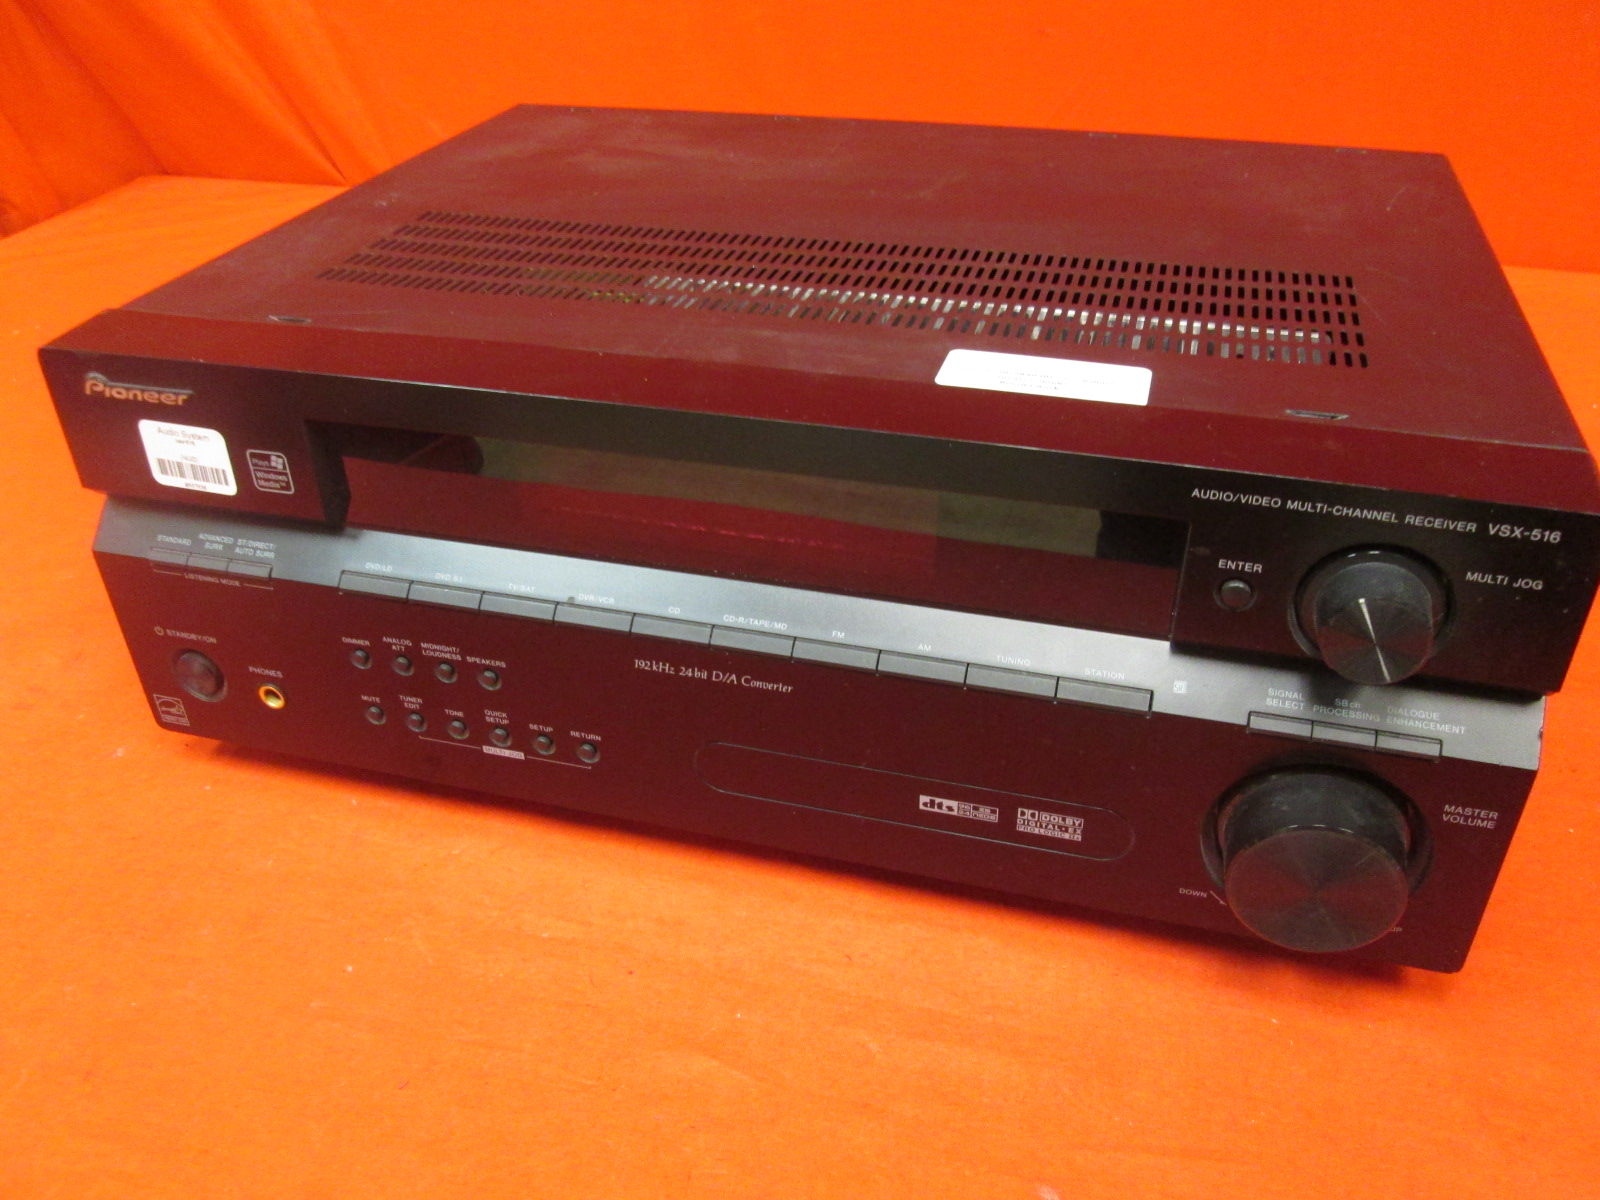 Pioneer VSX-516-K 7.1 Channel Home Theater Receiver